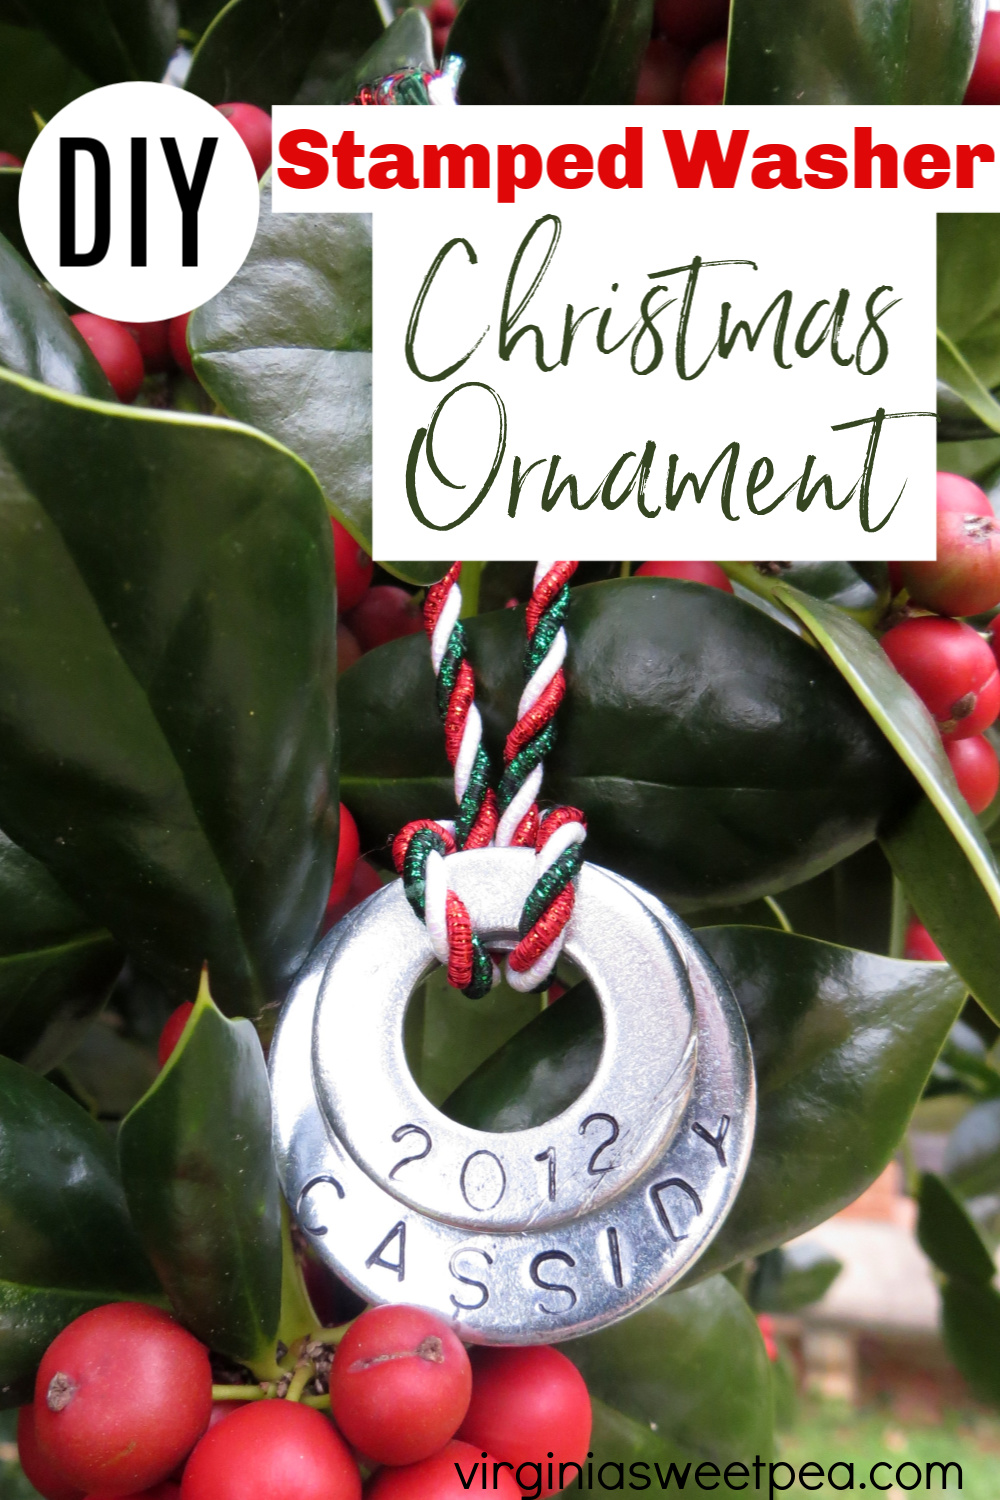 Stamped Washer Christmas Ornament - Use a metal stamping kit and washers to make a personalized Christmas ornament.  These make a great gift.  #stampedmetal #diychristmasornament #christmascraft via @spaula